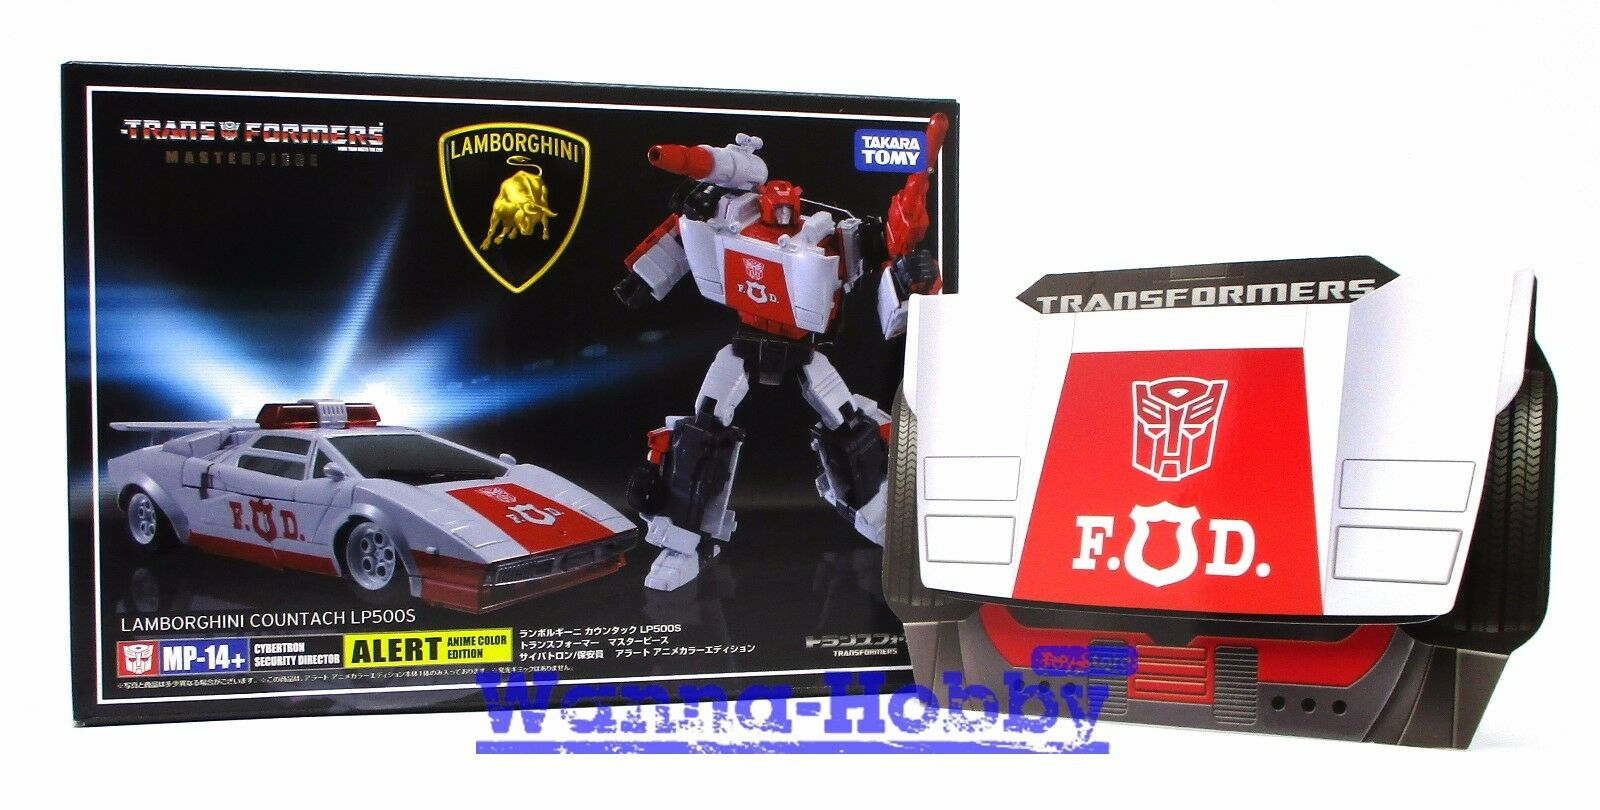 『W。H』MISB 75215 TRANSFORMERS MASTER PIECE MP-14+ Red Alert Special Anime + coin